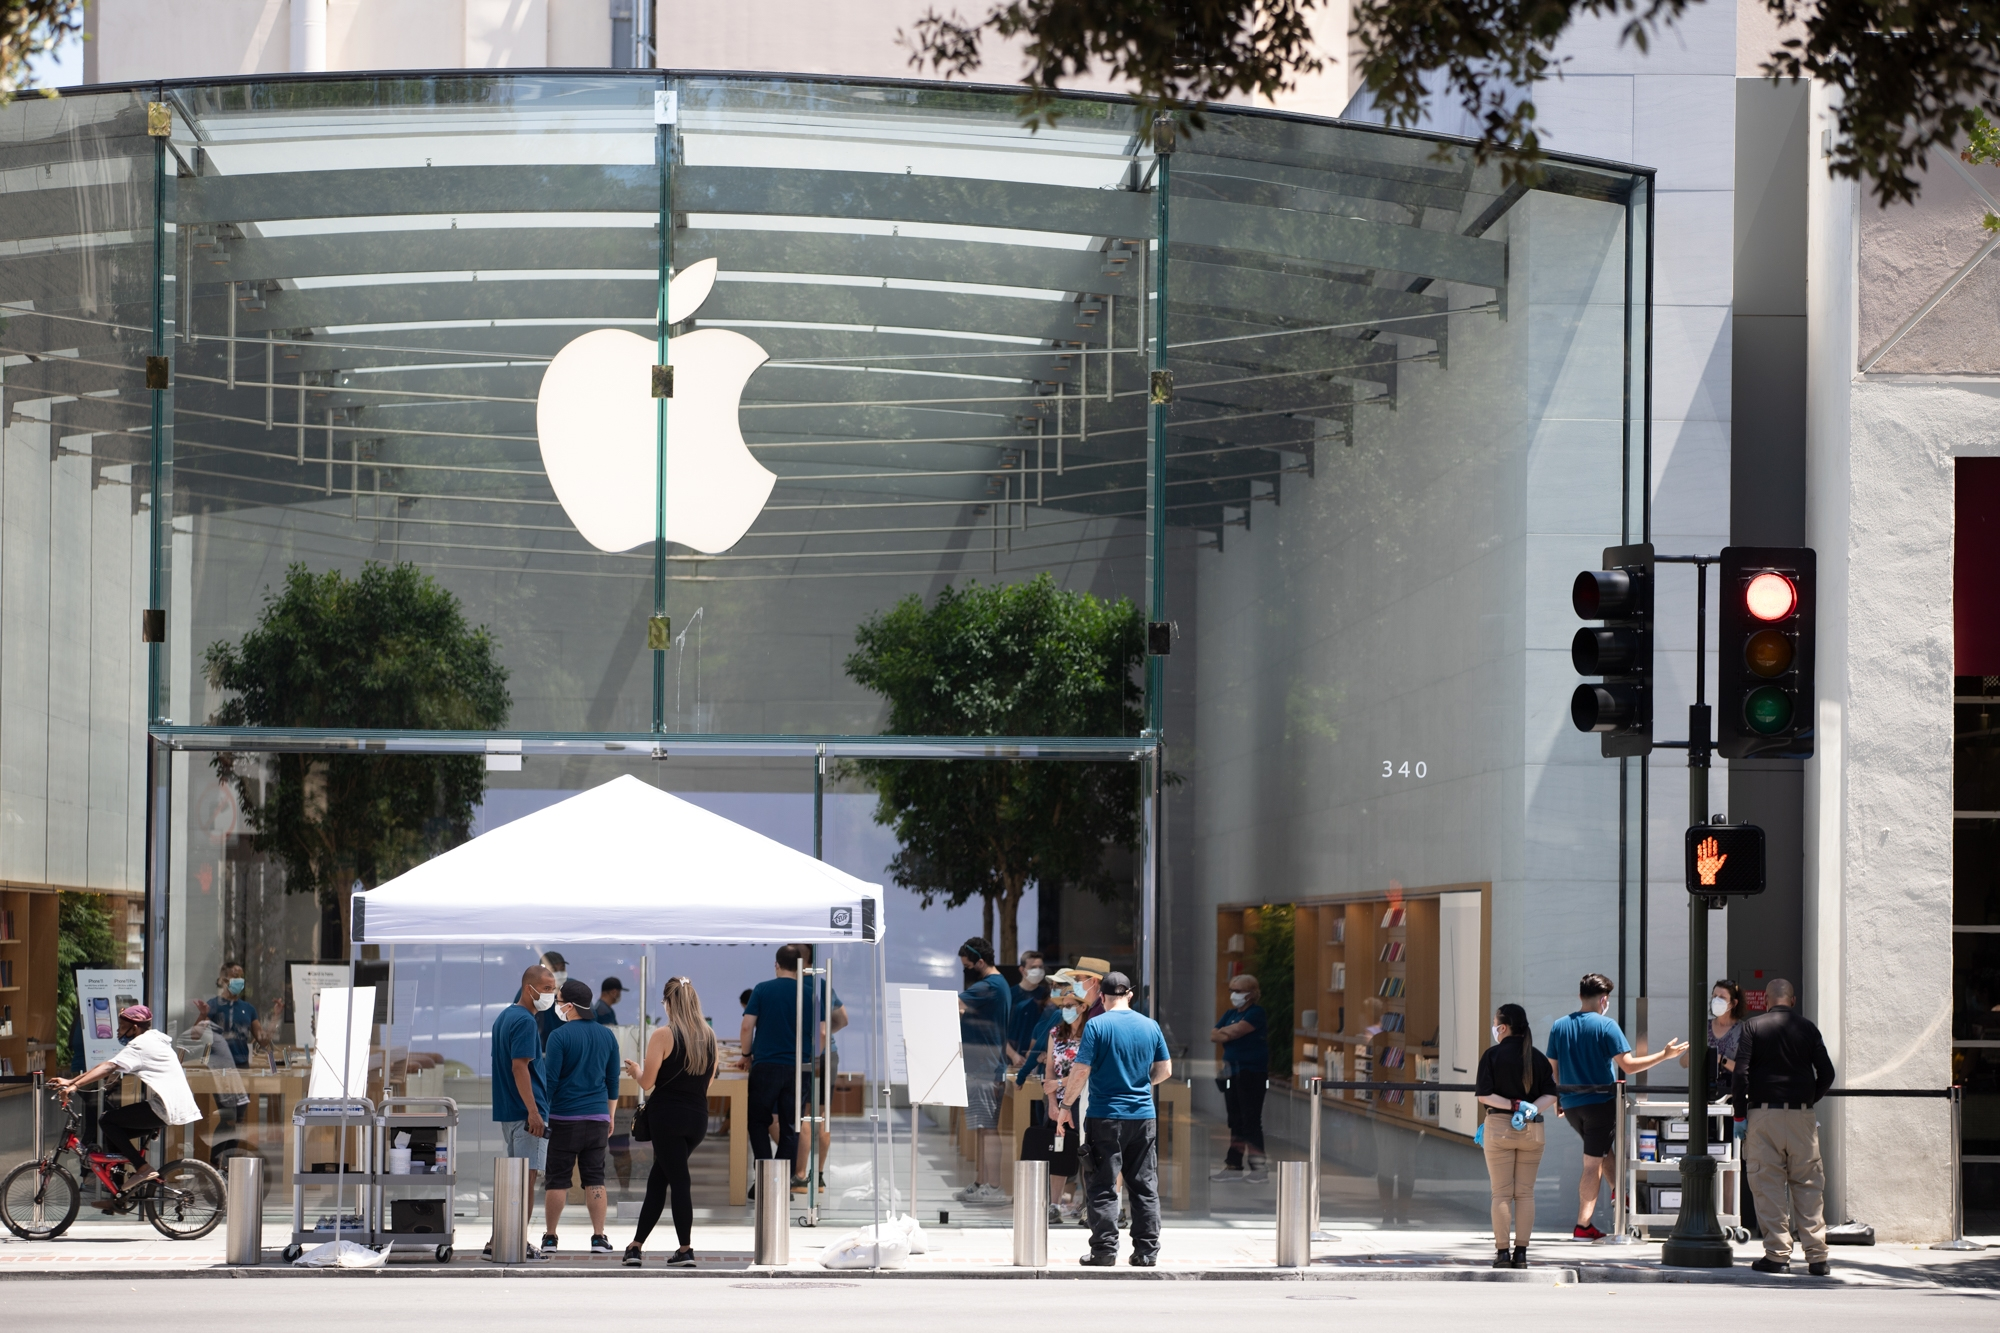 Apple To Pay $113 Million To Resolve Throttling Probe 11/19/2020